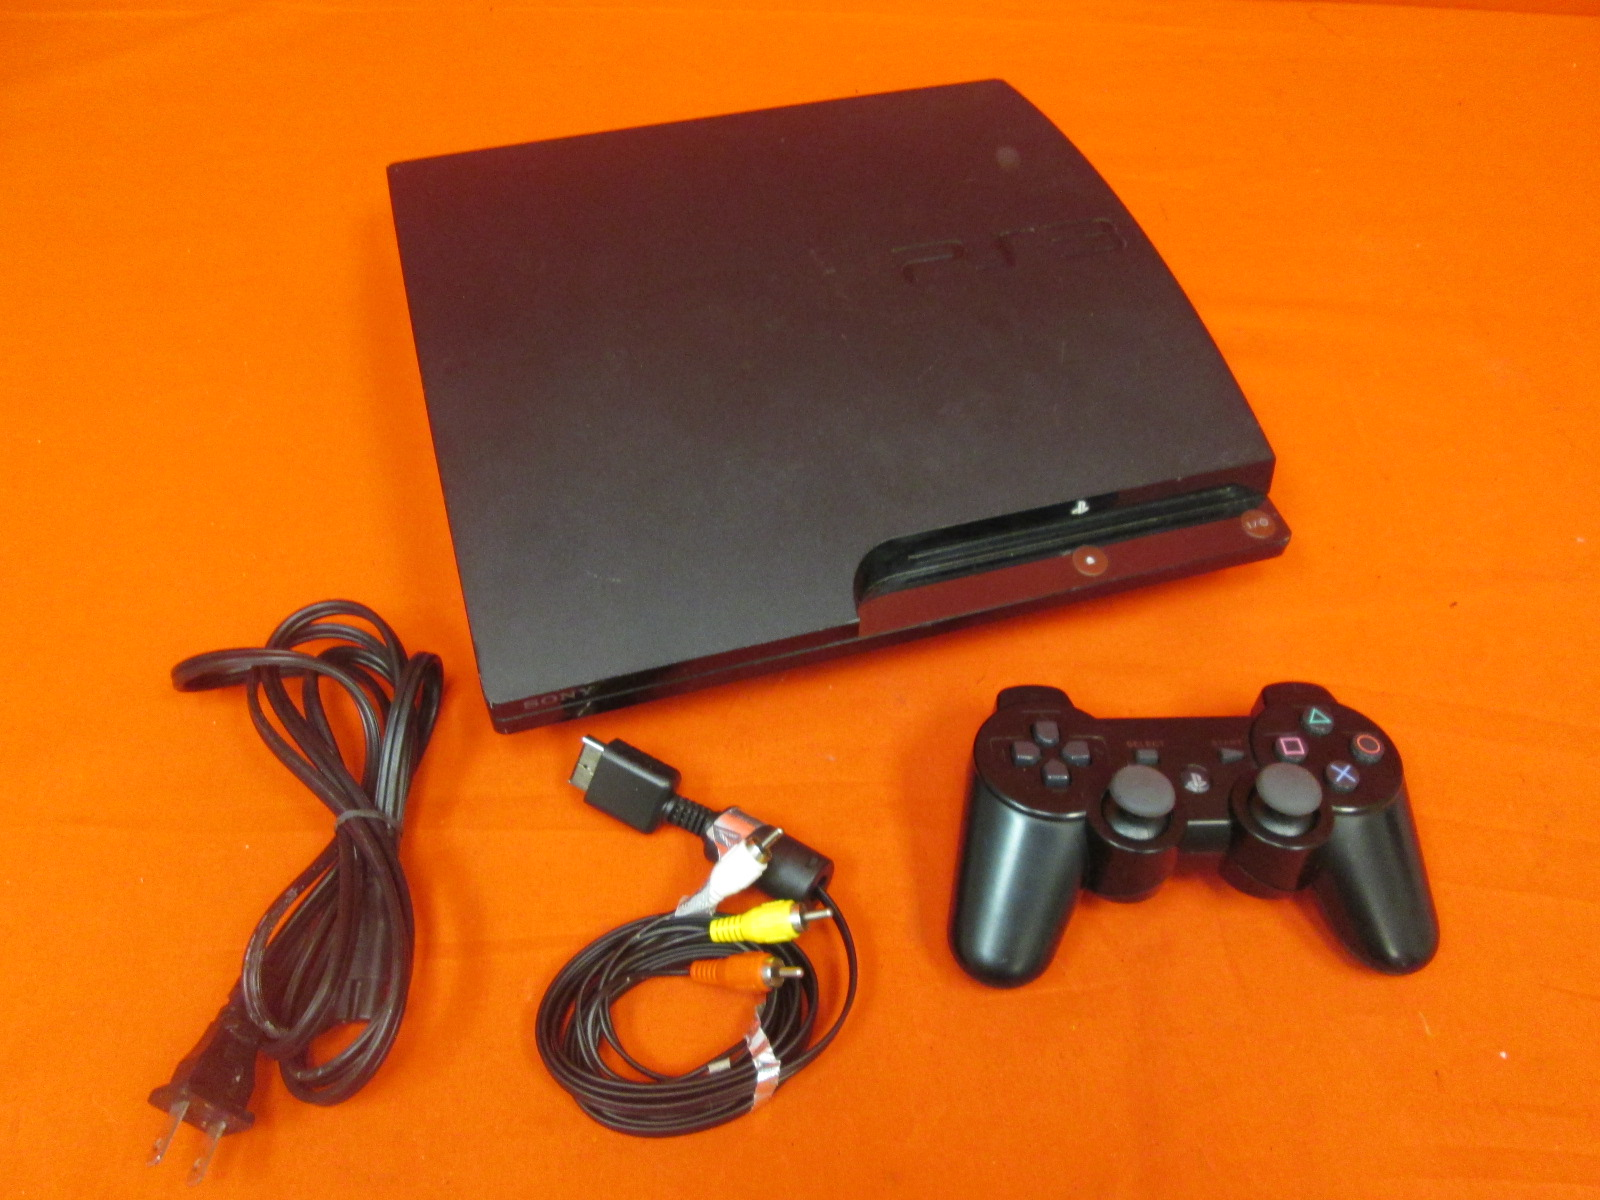 Image 0 of Sony PlayStation 3 Slim 160 GB Black Video Game Console